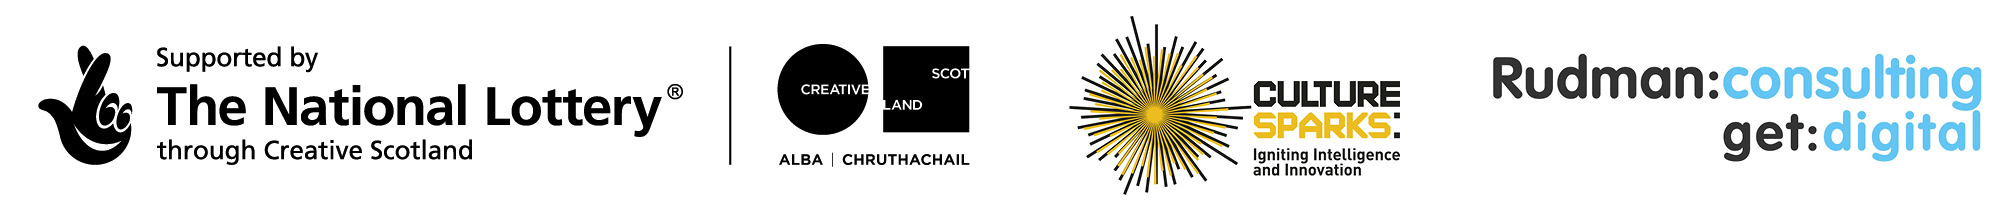 Creative Scotland, Culture Sparks, Rudman Consulting